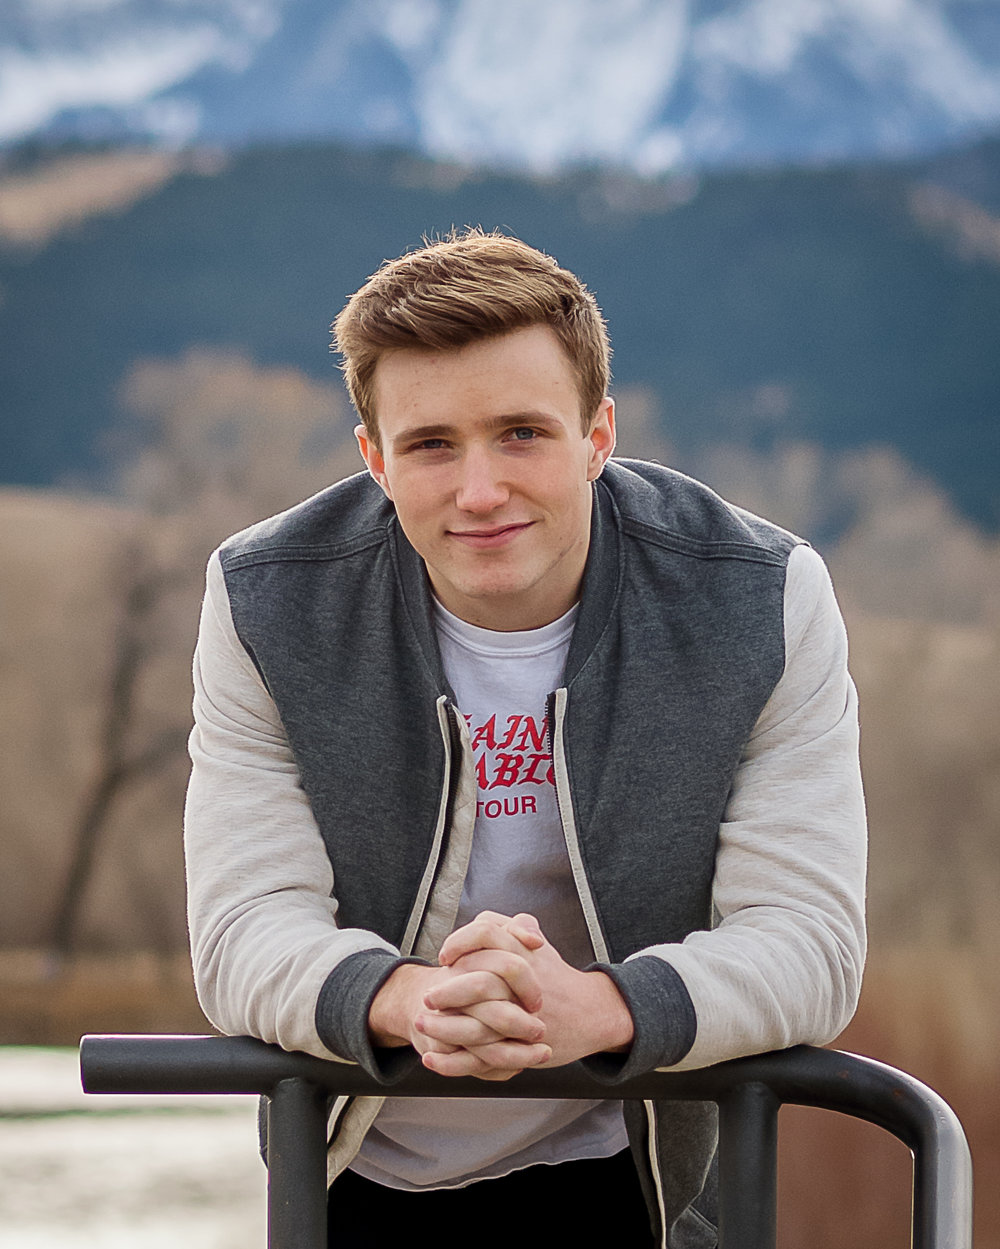 Senior Portrait Photography Livingston Montana